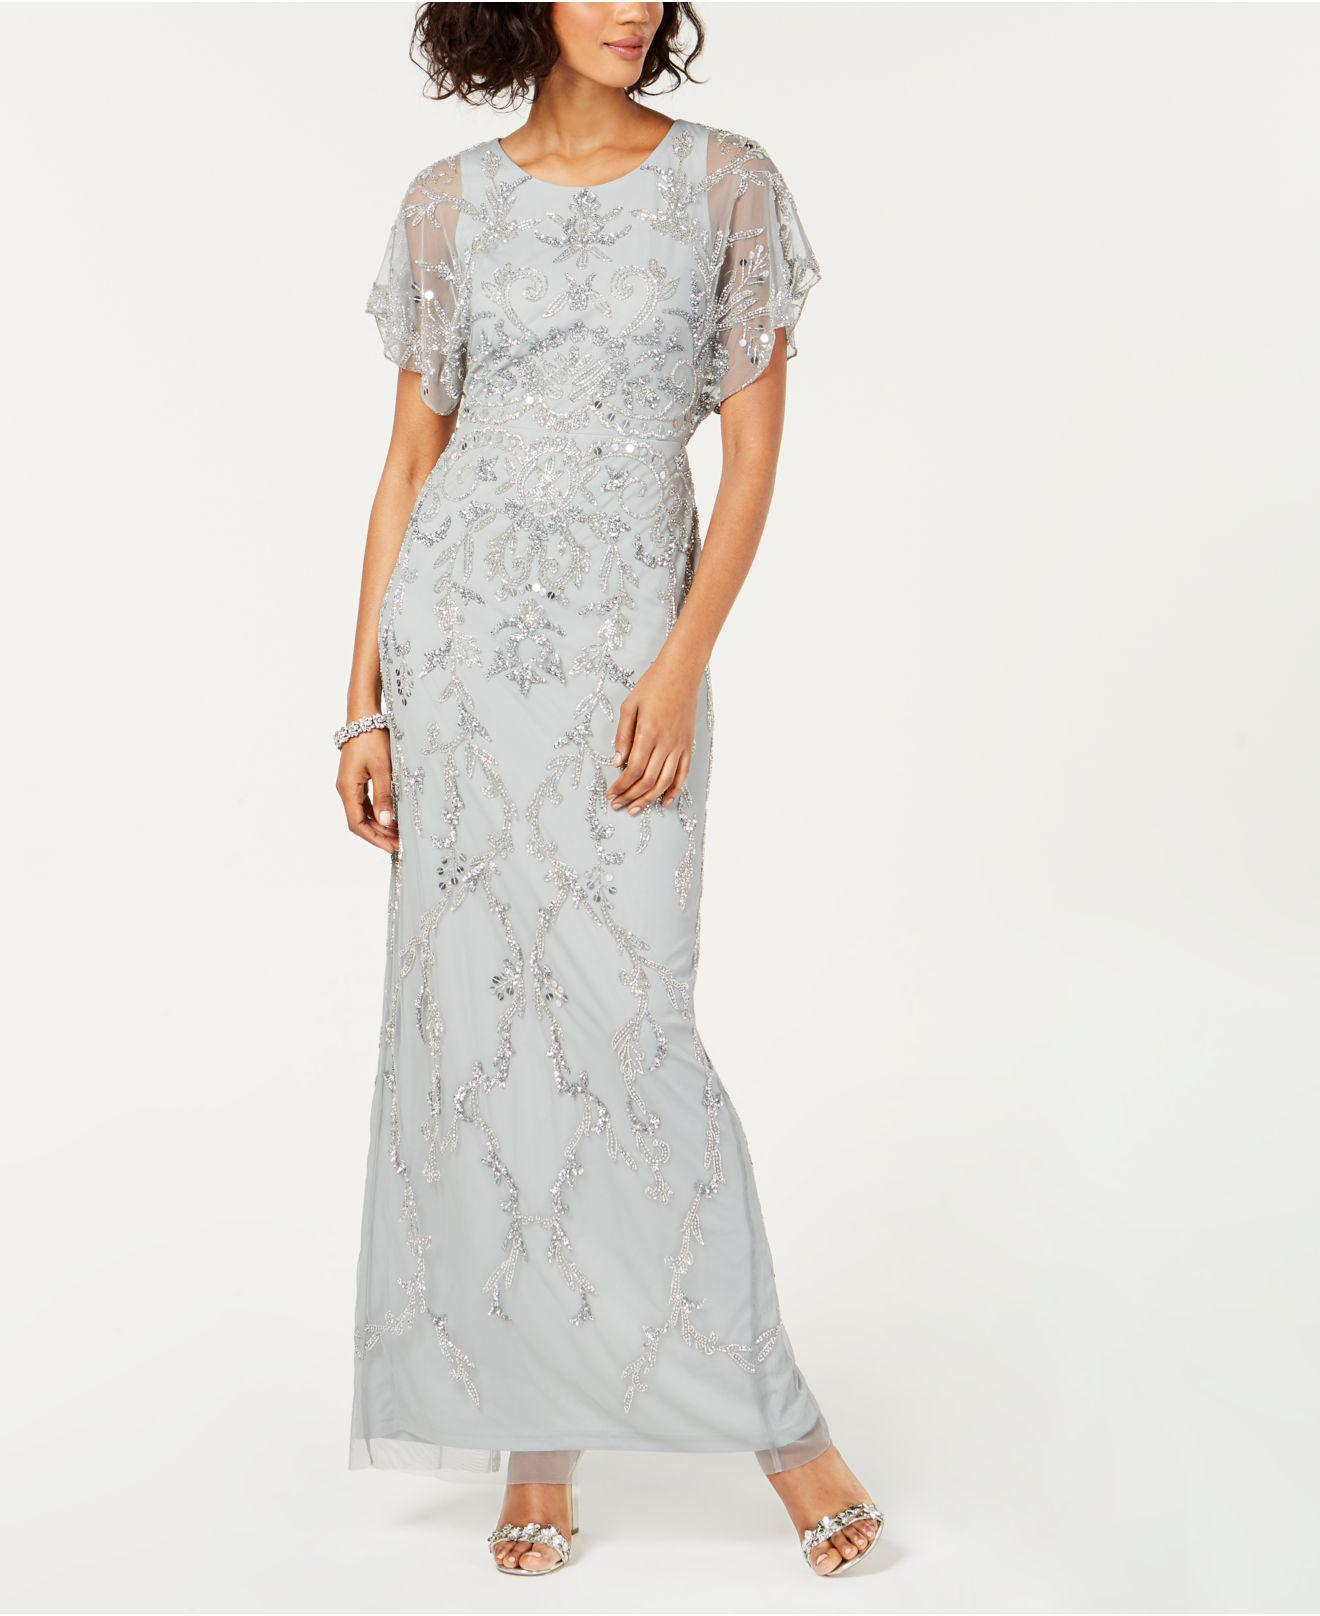 0647816397103 Adrianna Papell. Women s Petite Embellished Short-sleeve Gown